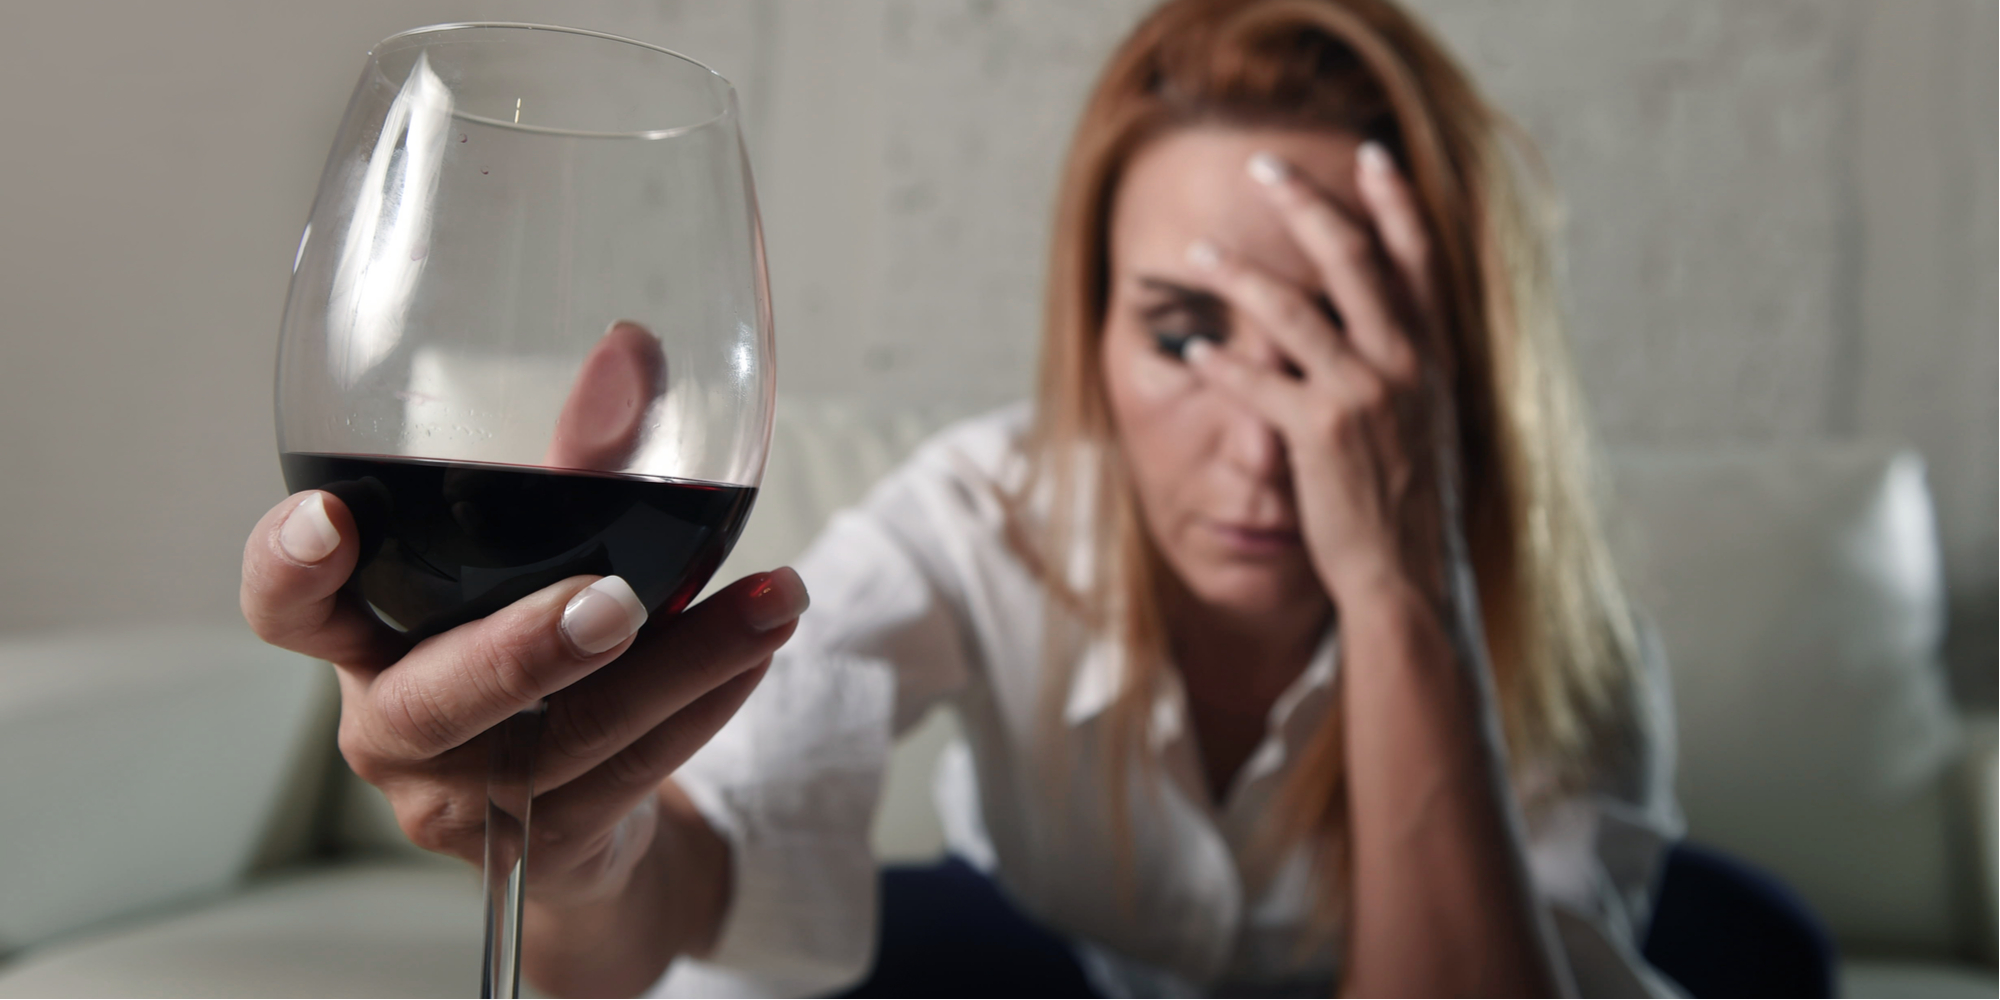 Signs of Alcoholism and What to Do Next